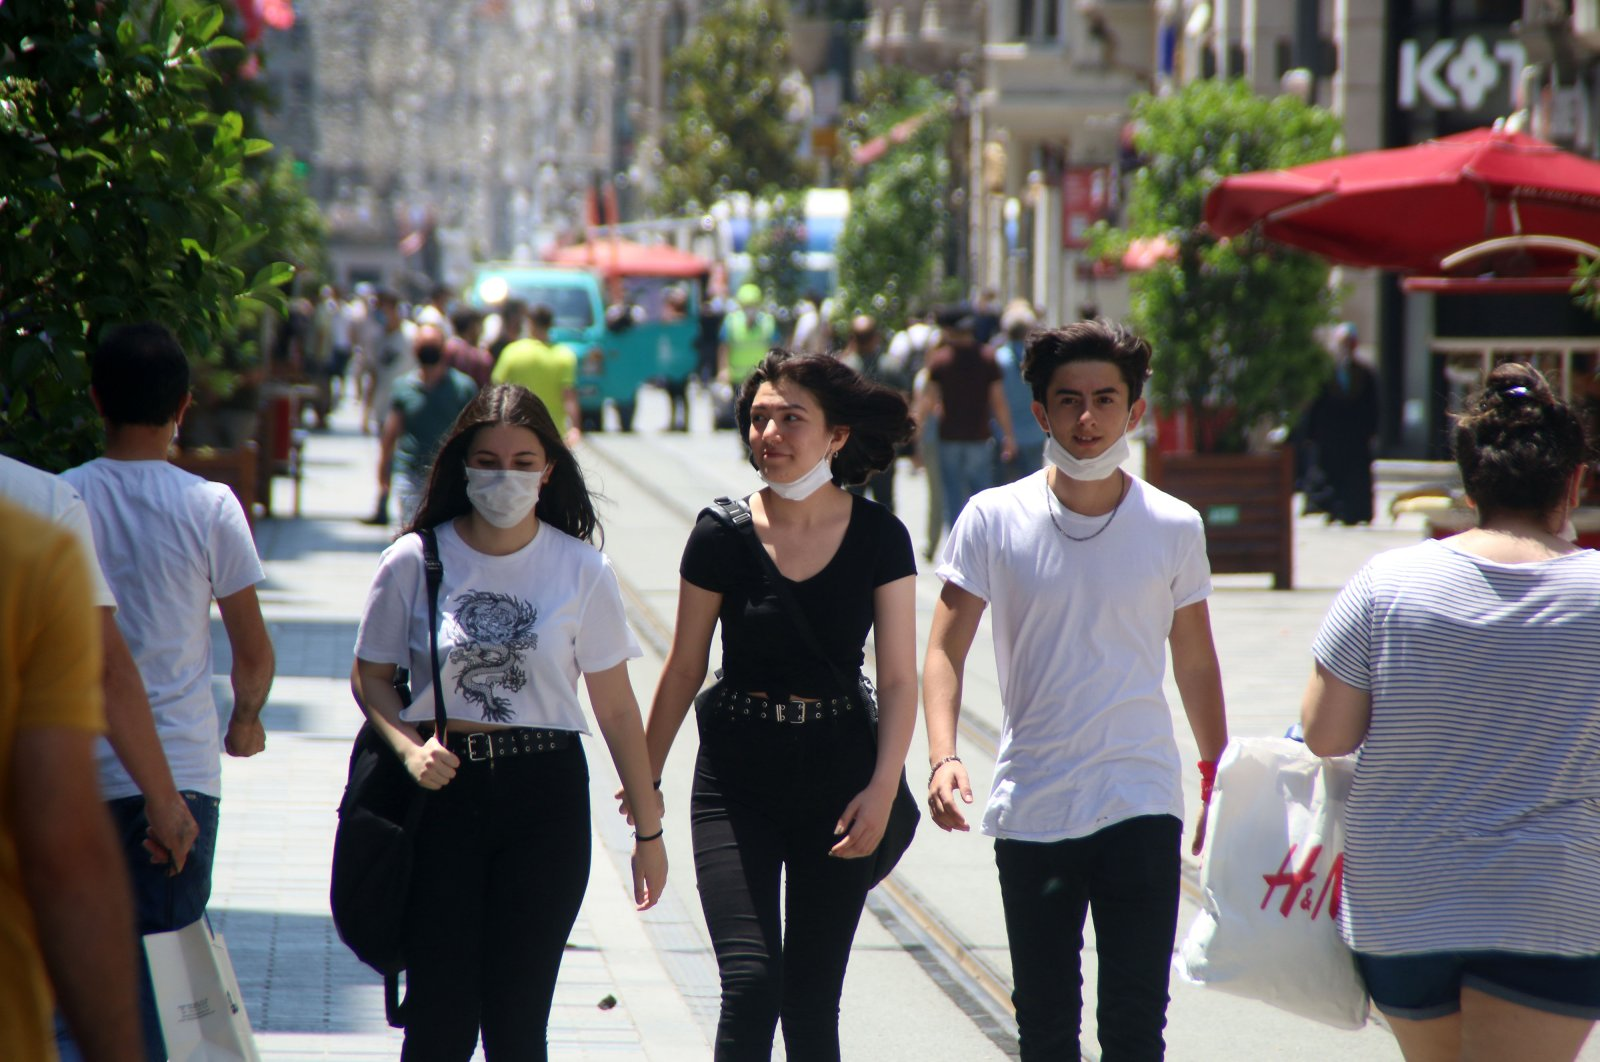 One person properly wears a mask, as two others keep theirs open on İstiklal Avenue, in Istanbul, Turkey, June 21, 2020. (DHA Photo)